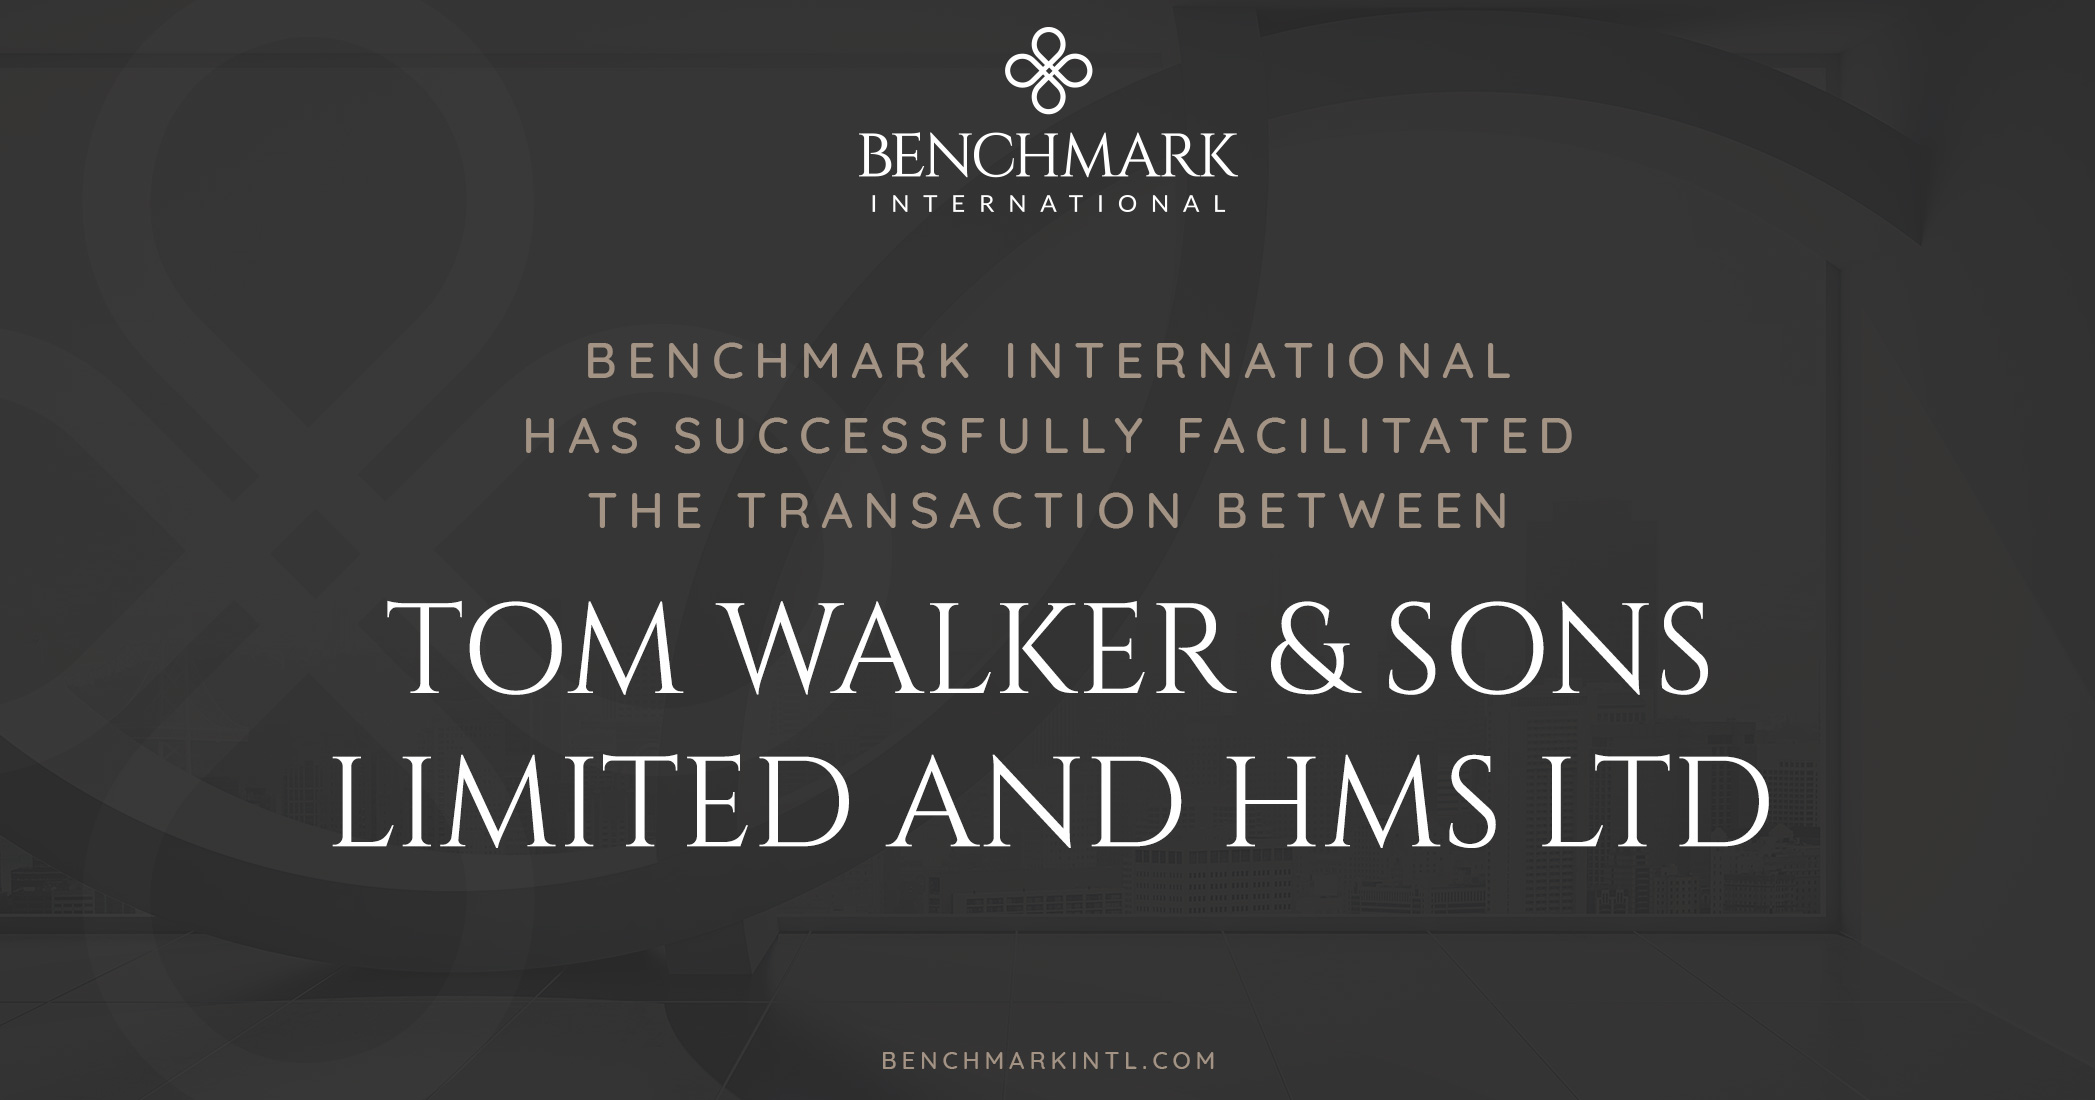 Benchmark International Successfully Facilitated the Transaction Between Tom Walker & Sons Limited and HMS Ltd